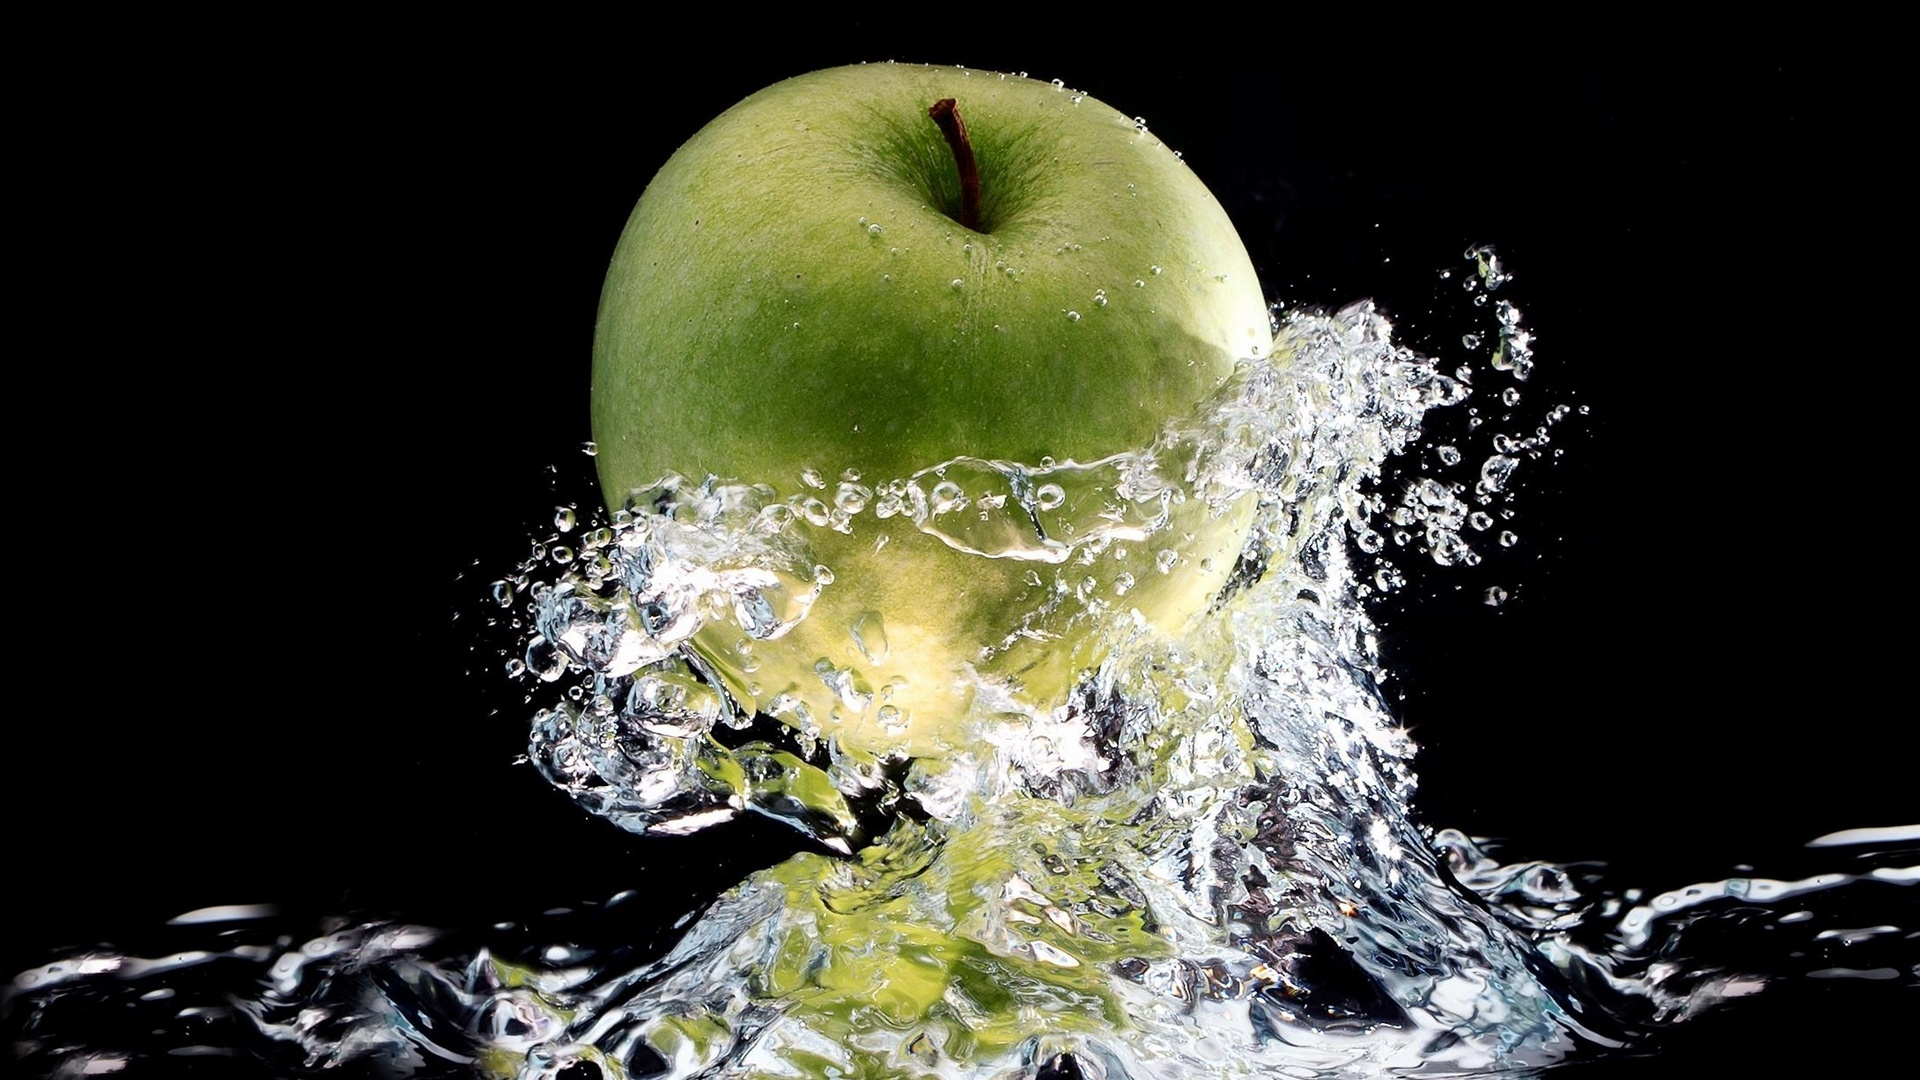 2560x1024 as well Id169192 as well Green Apple Water Splash 1920x1080 moreover 3200x1200 furthermore Plumbs. on 1920x1080 wallpaper